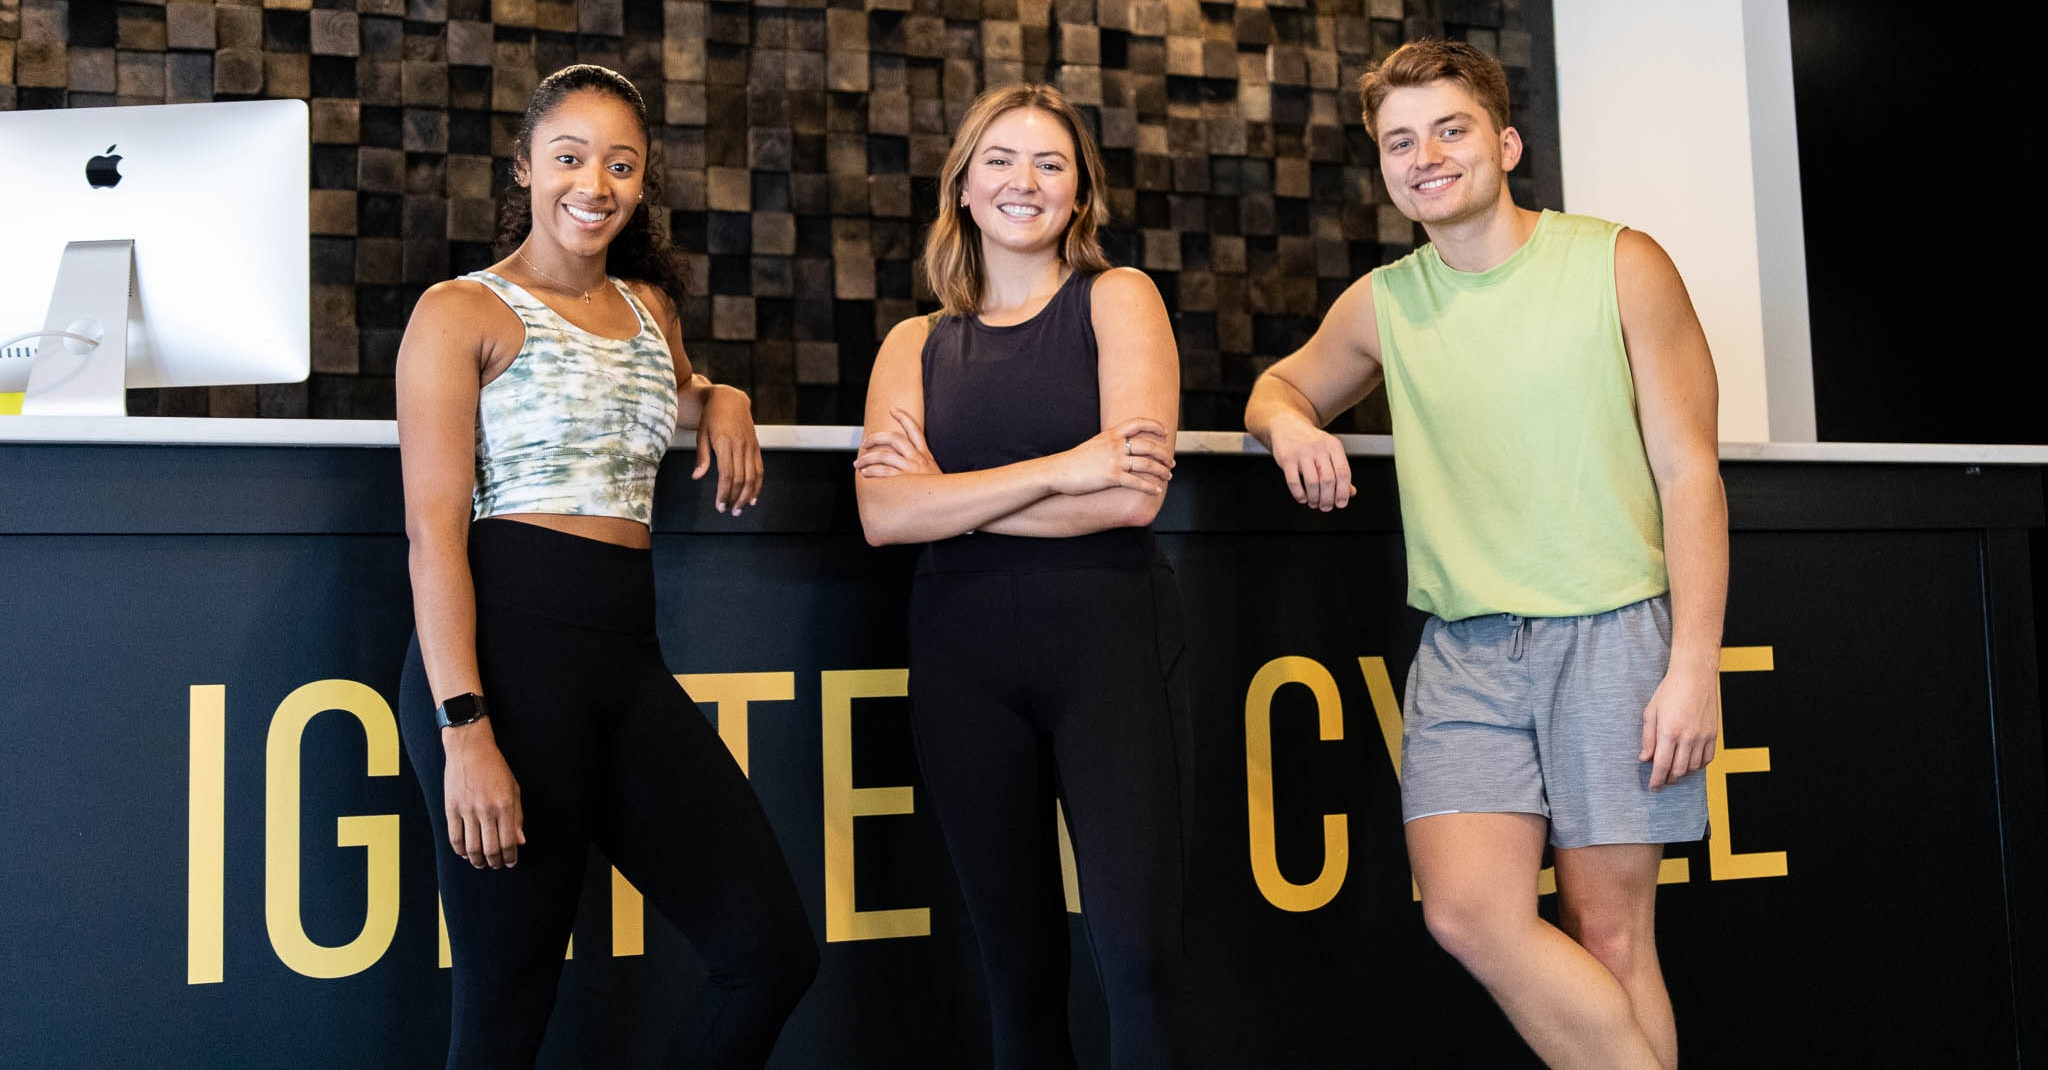 Meet Ignite Cycle's newest faces + discount code just for you